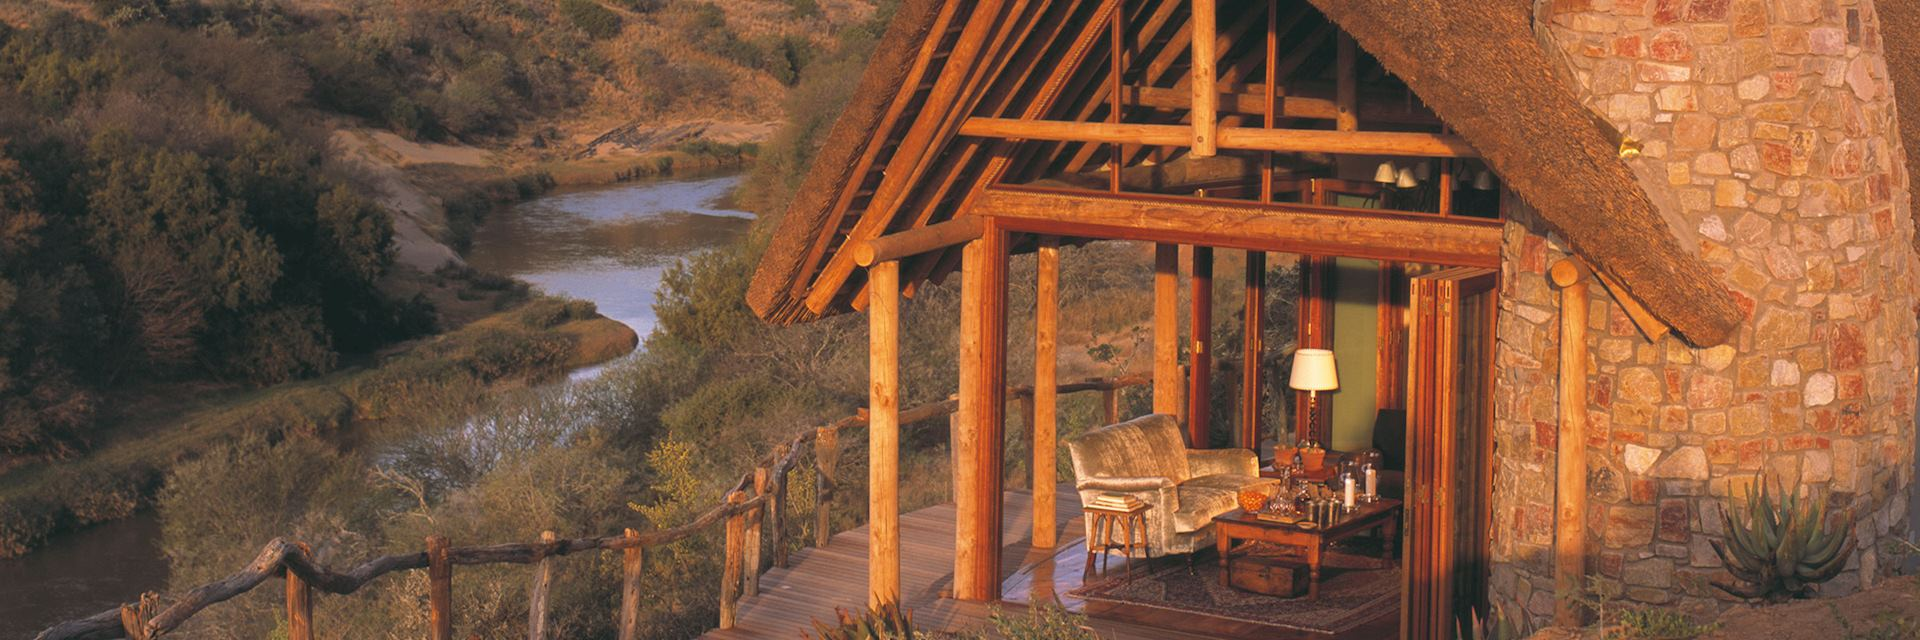 Great Fish River Lodge, South Africa